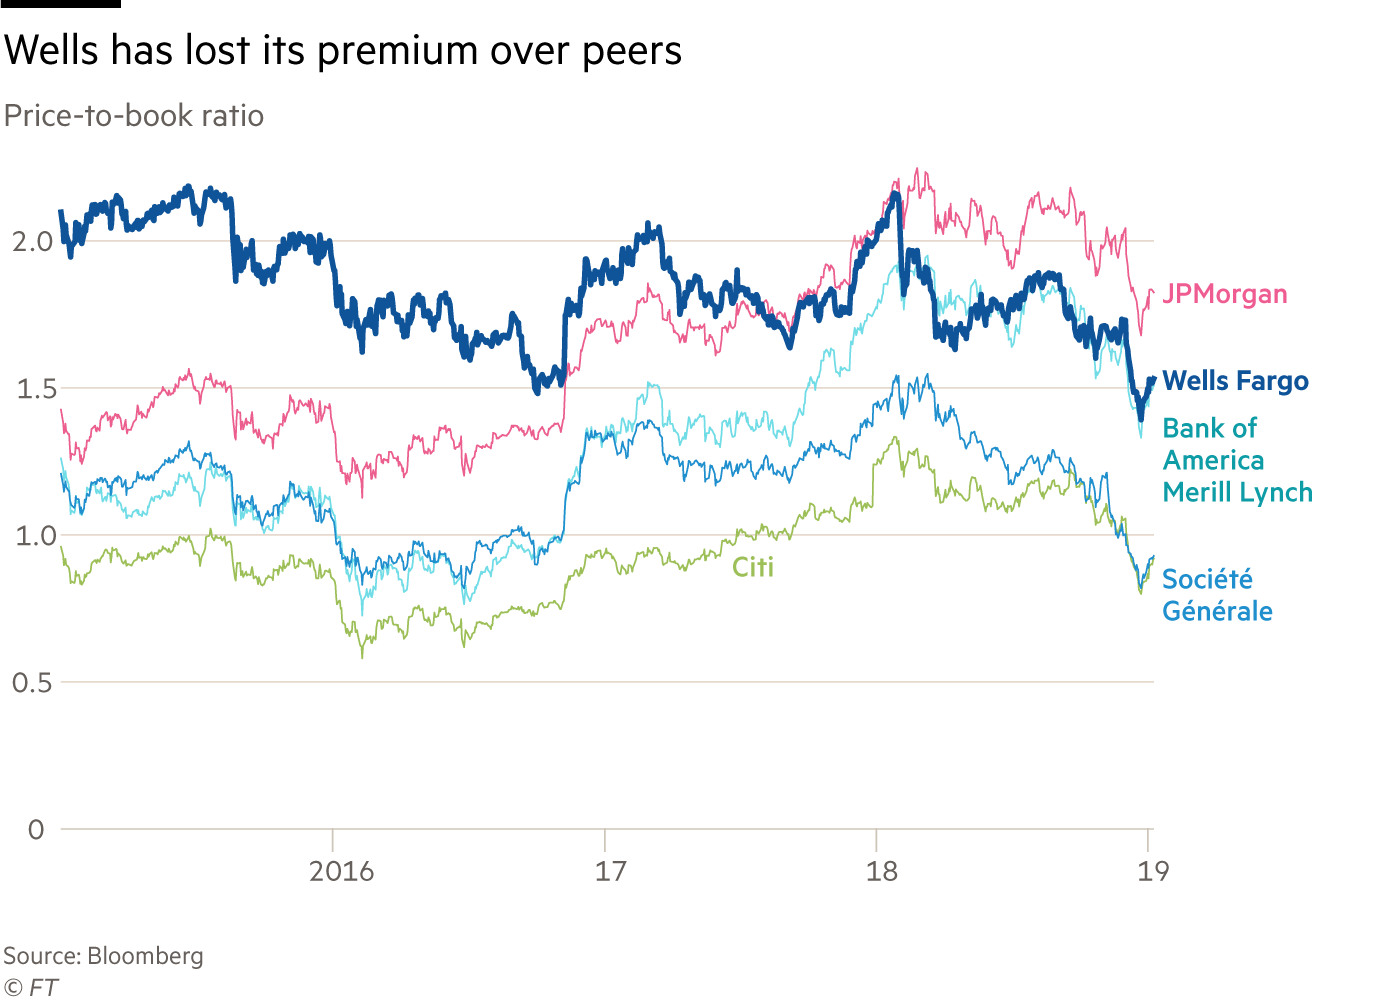 Chart showing Well Fargo's ' price-to-book ratio has lost its premium over peers